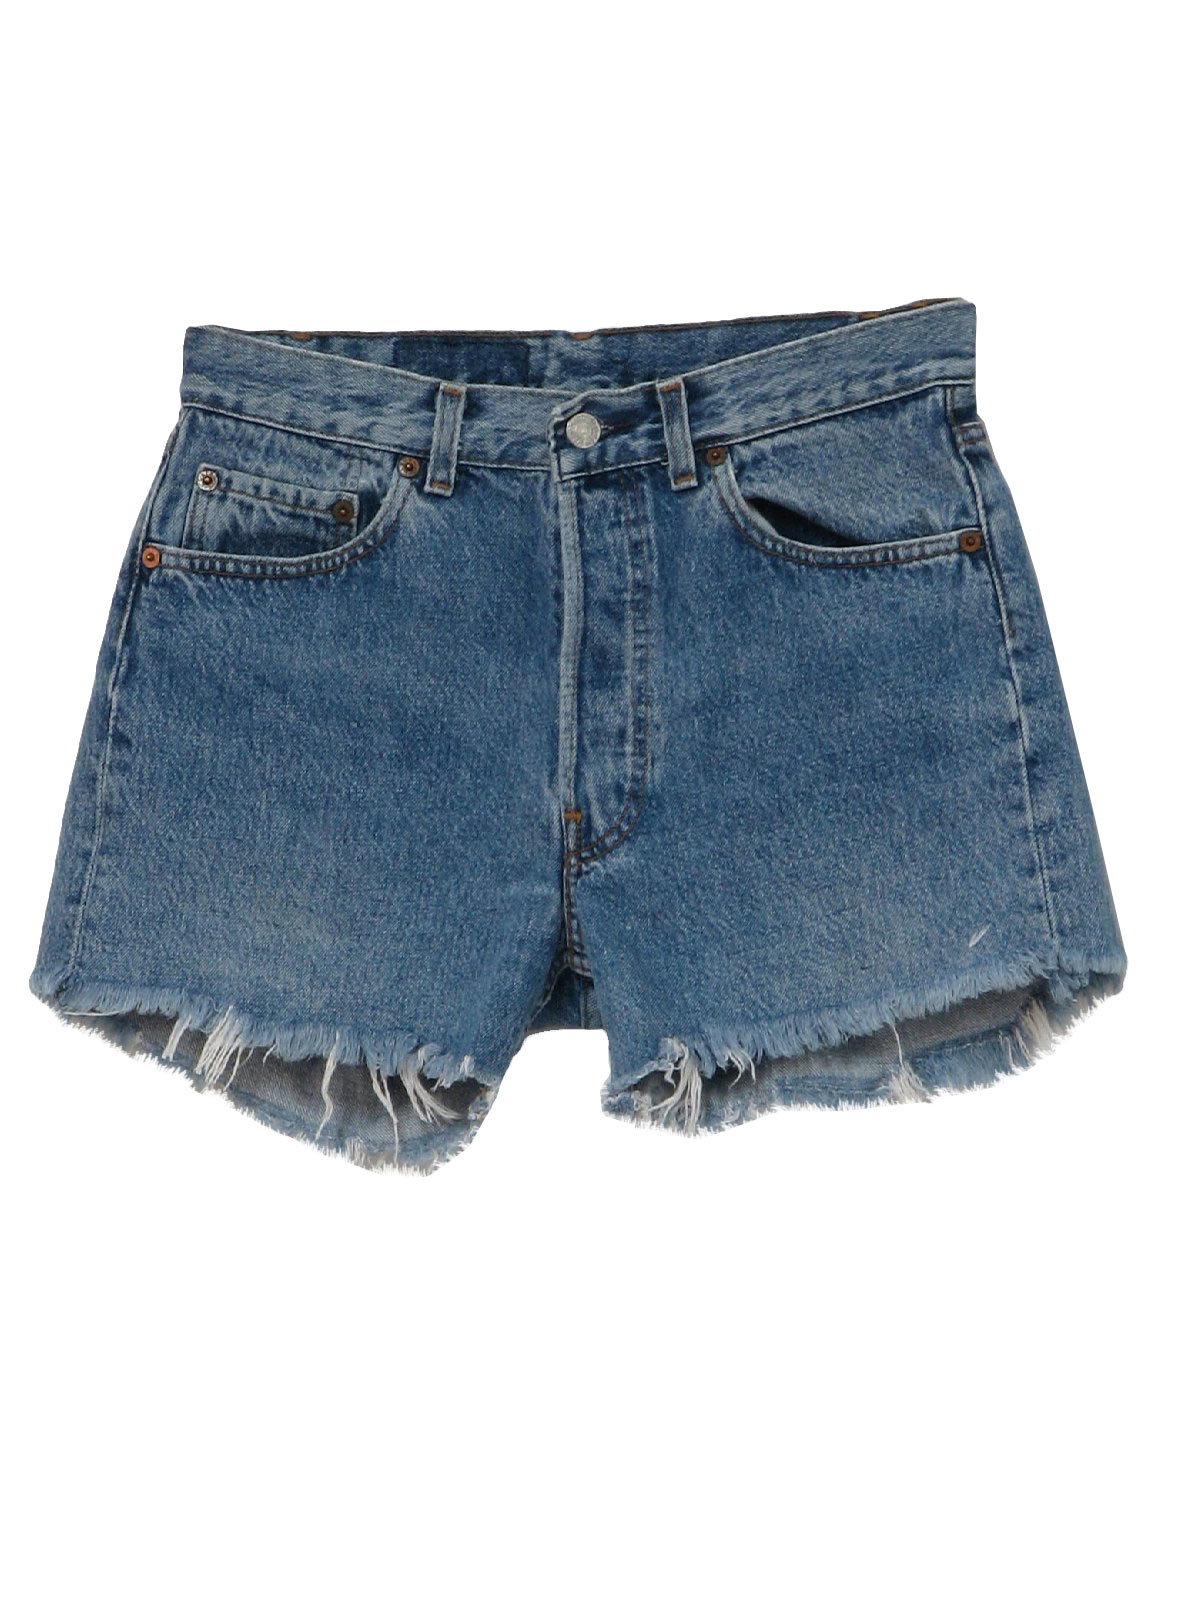 Mens Short Denim Shorts